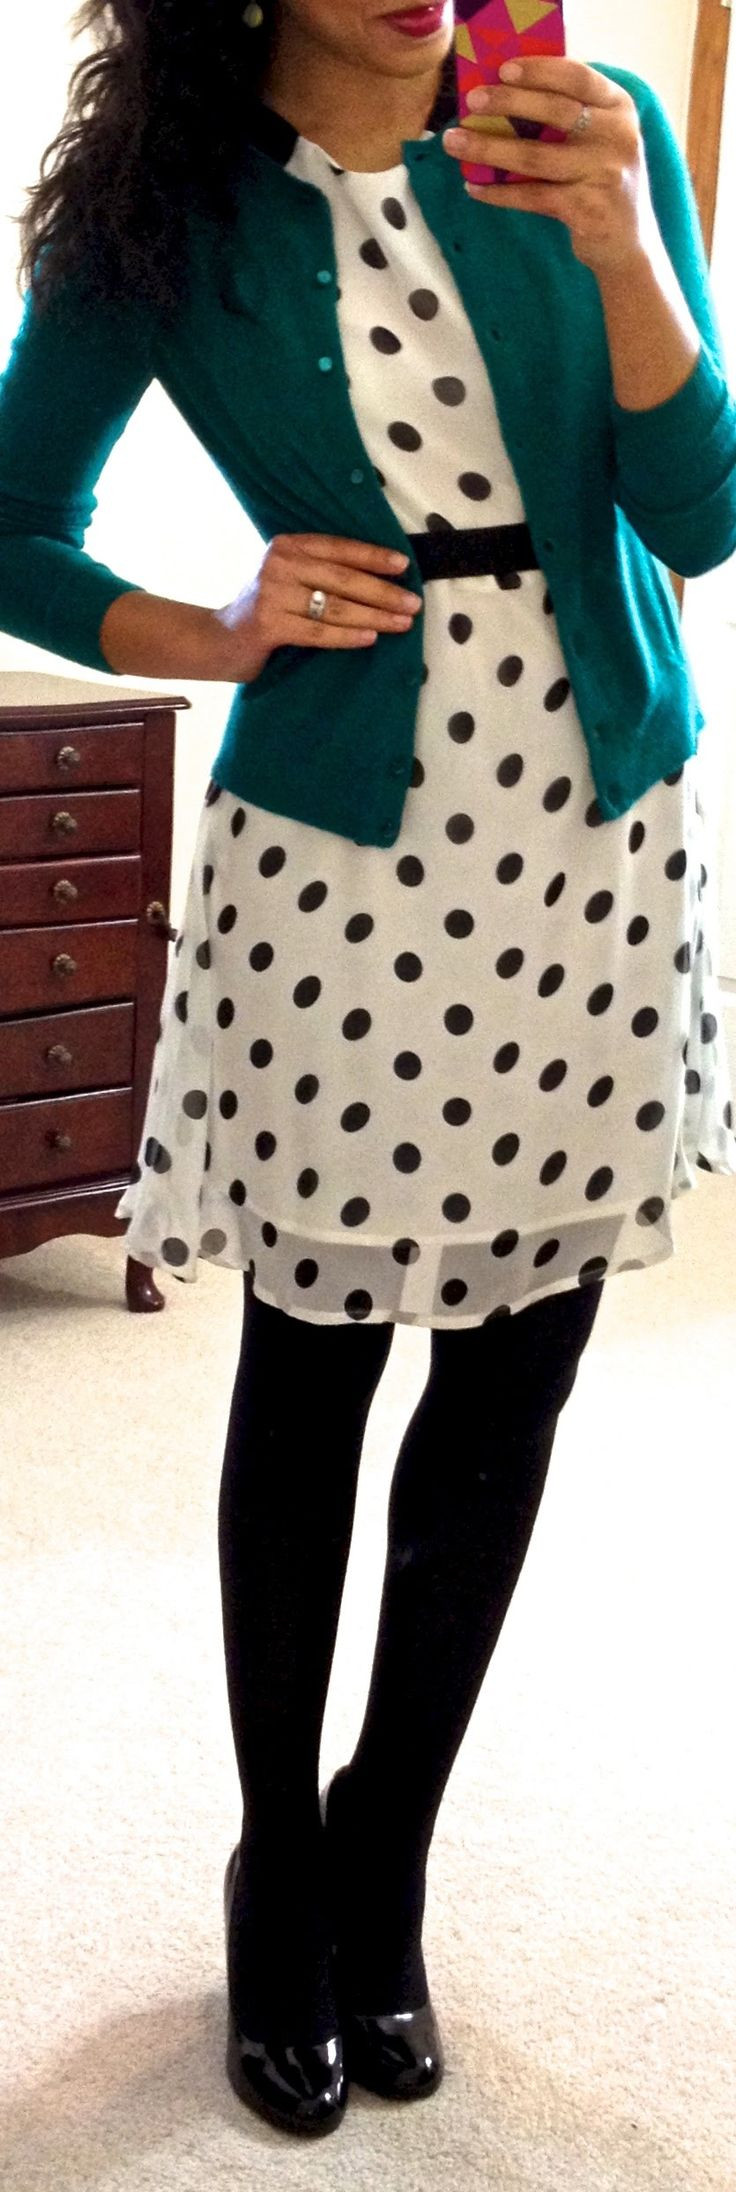 Love the turquoise mixed with the big polka dots.